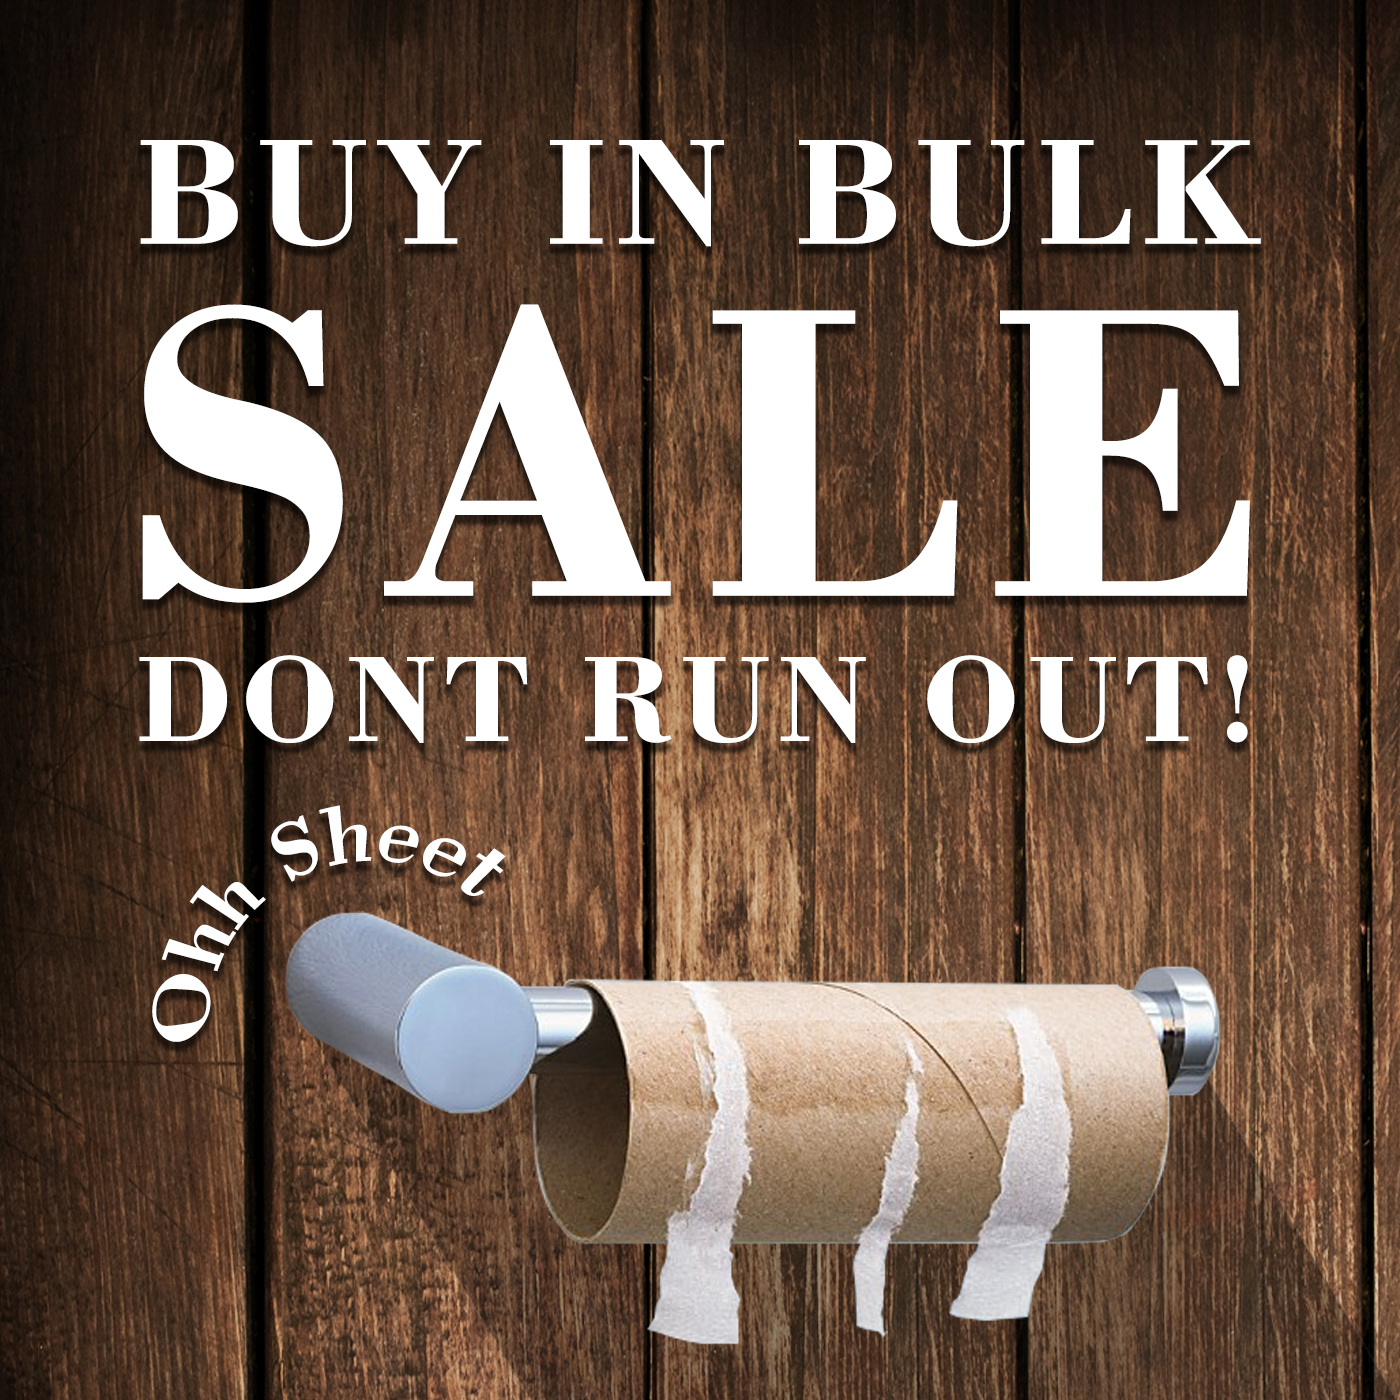 Buy in BULK - Don't run out  Less than 4 weeks to Xmas